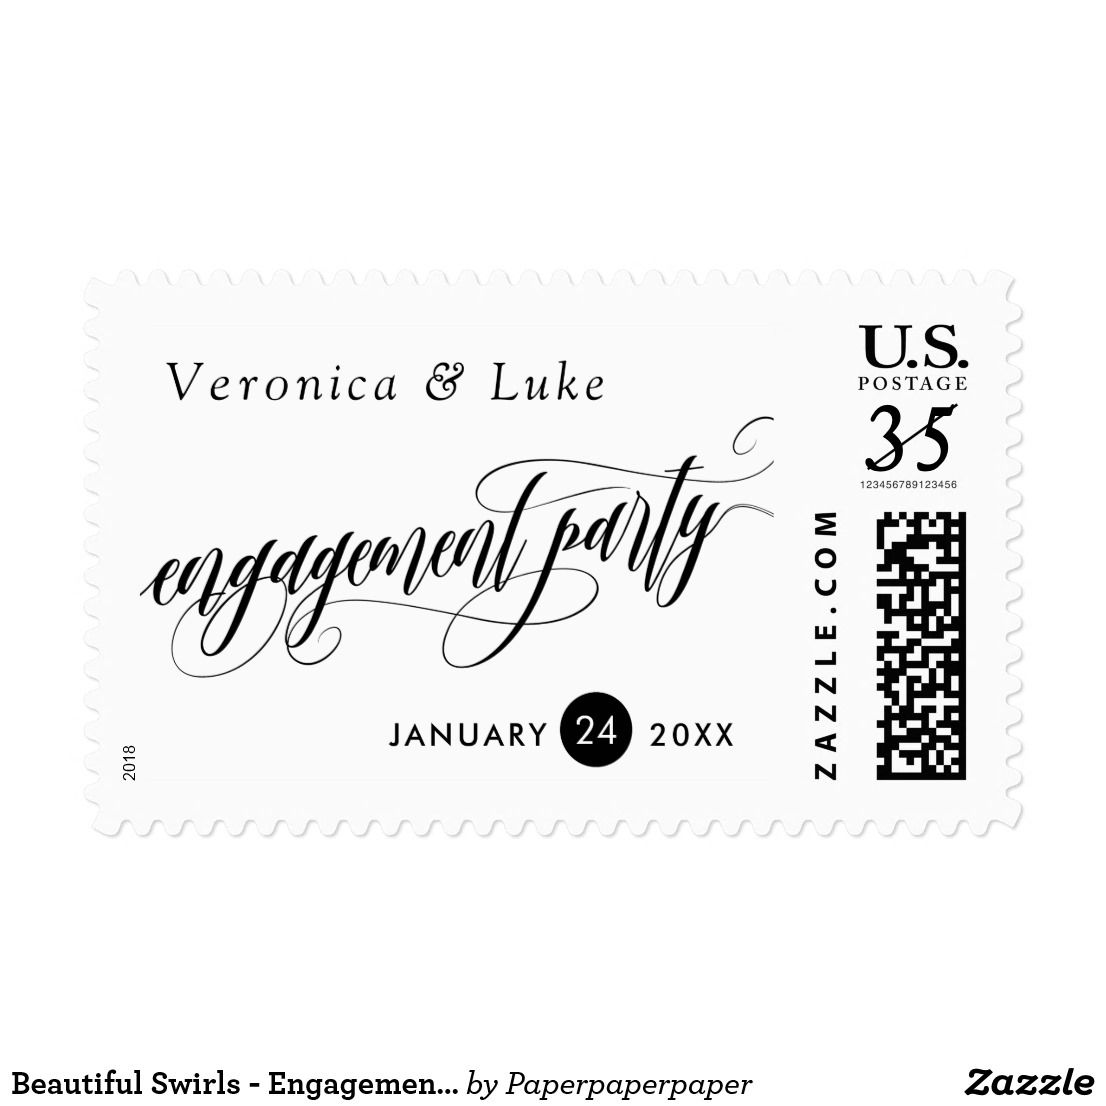 Beautiful Swirls - Engagement Party - Names & Date Postage -- Elegant calligraphy engagement party postage with a gorgeous swirly font. Add your names and the date of your engagement party.